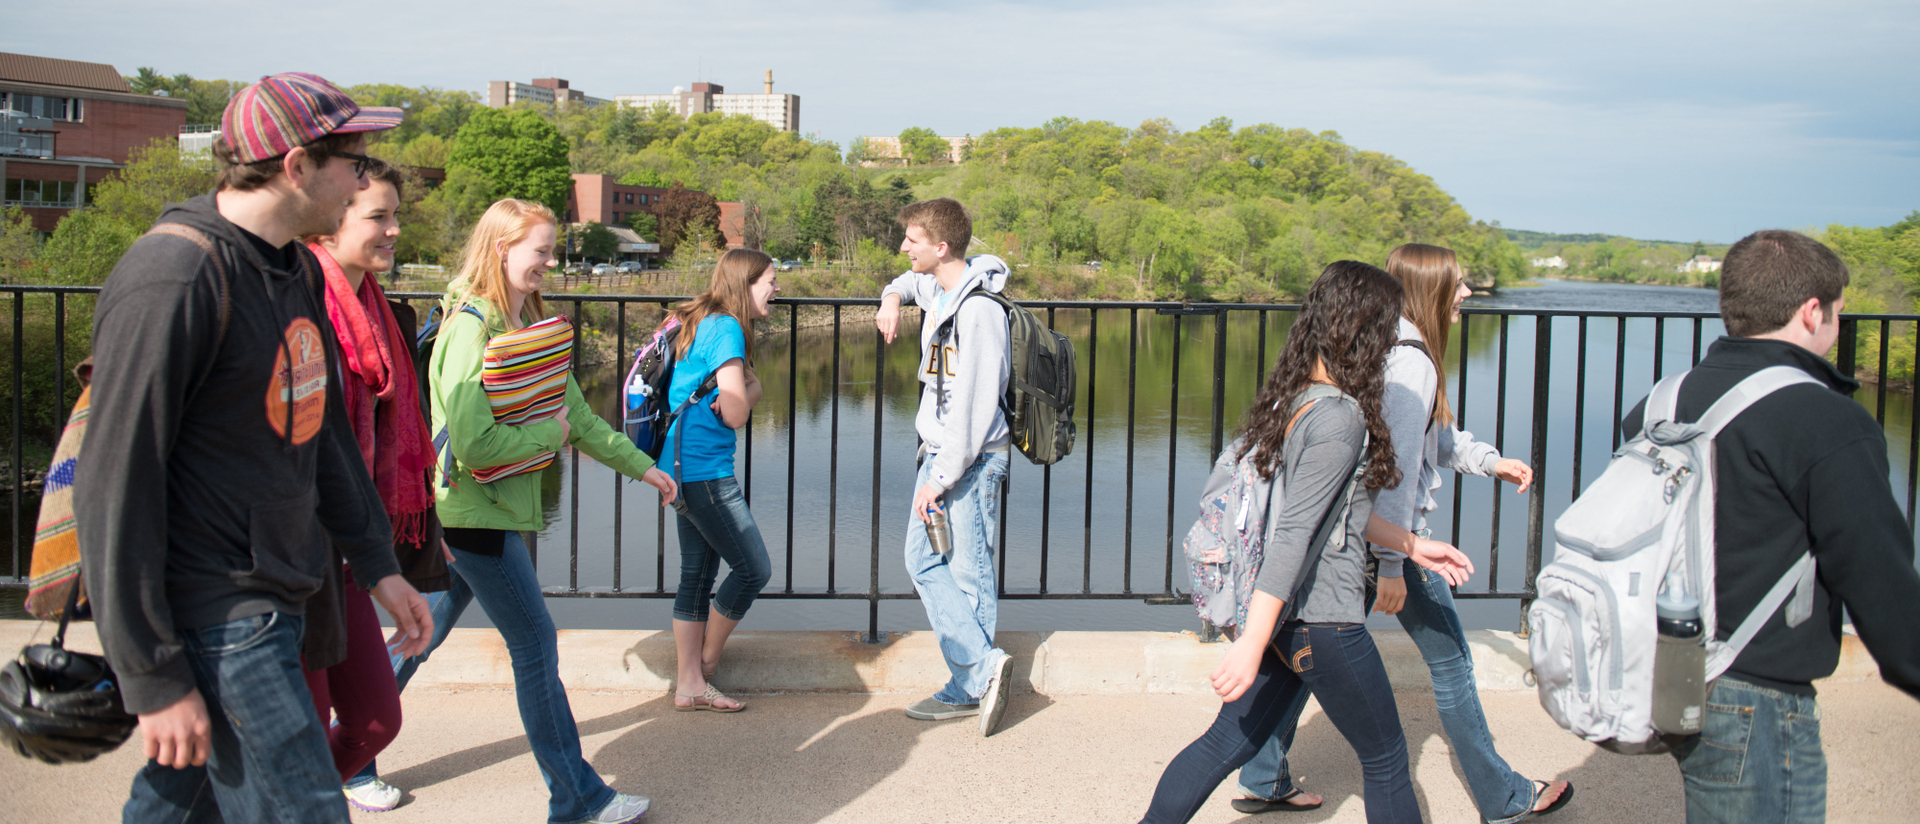 Students on campus footbridge